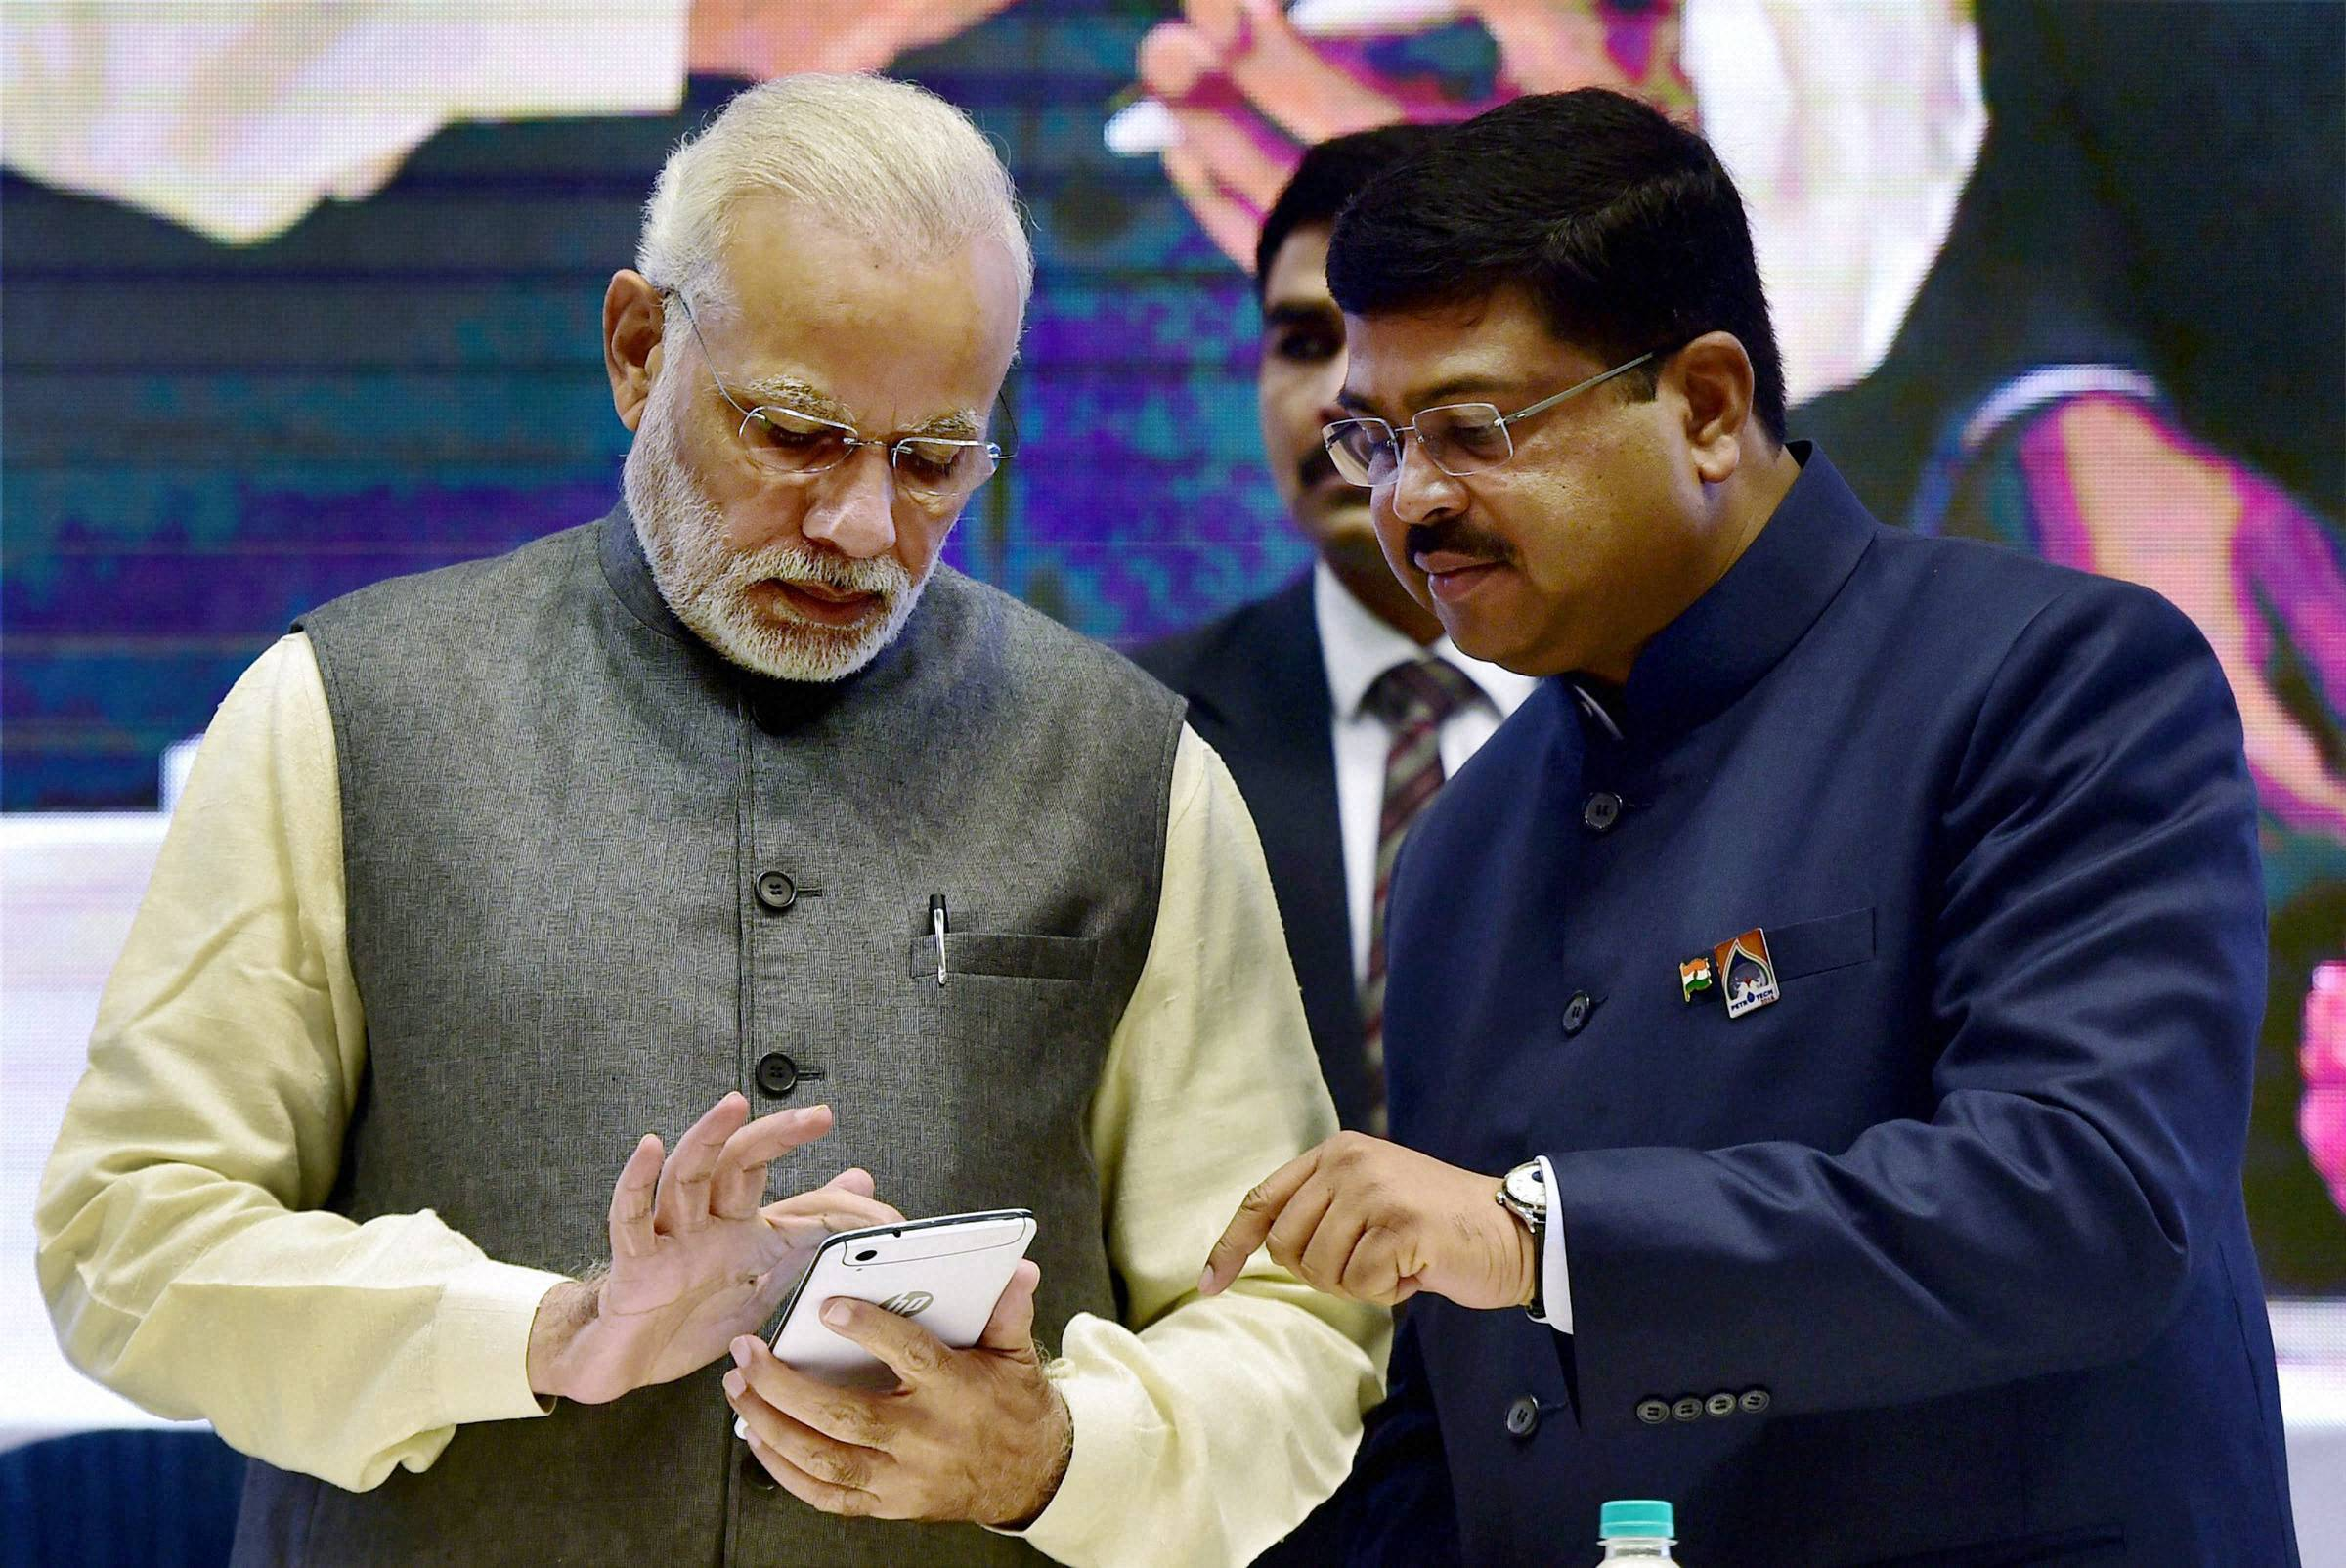 Prime Minister Narendra Modi asks Indian energy companies to become MNCs